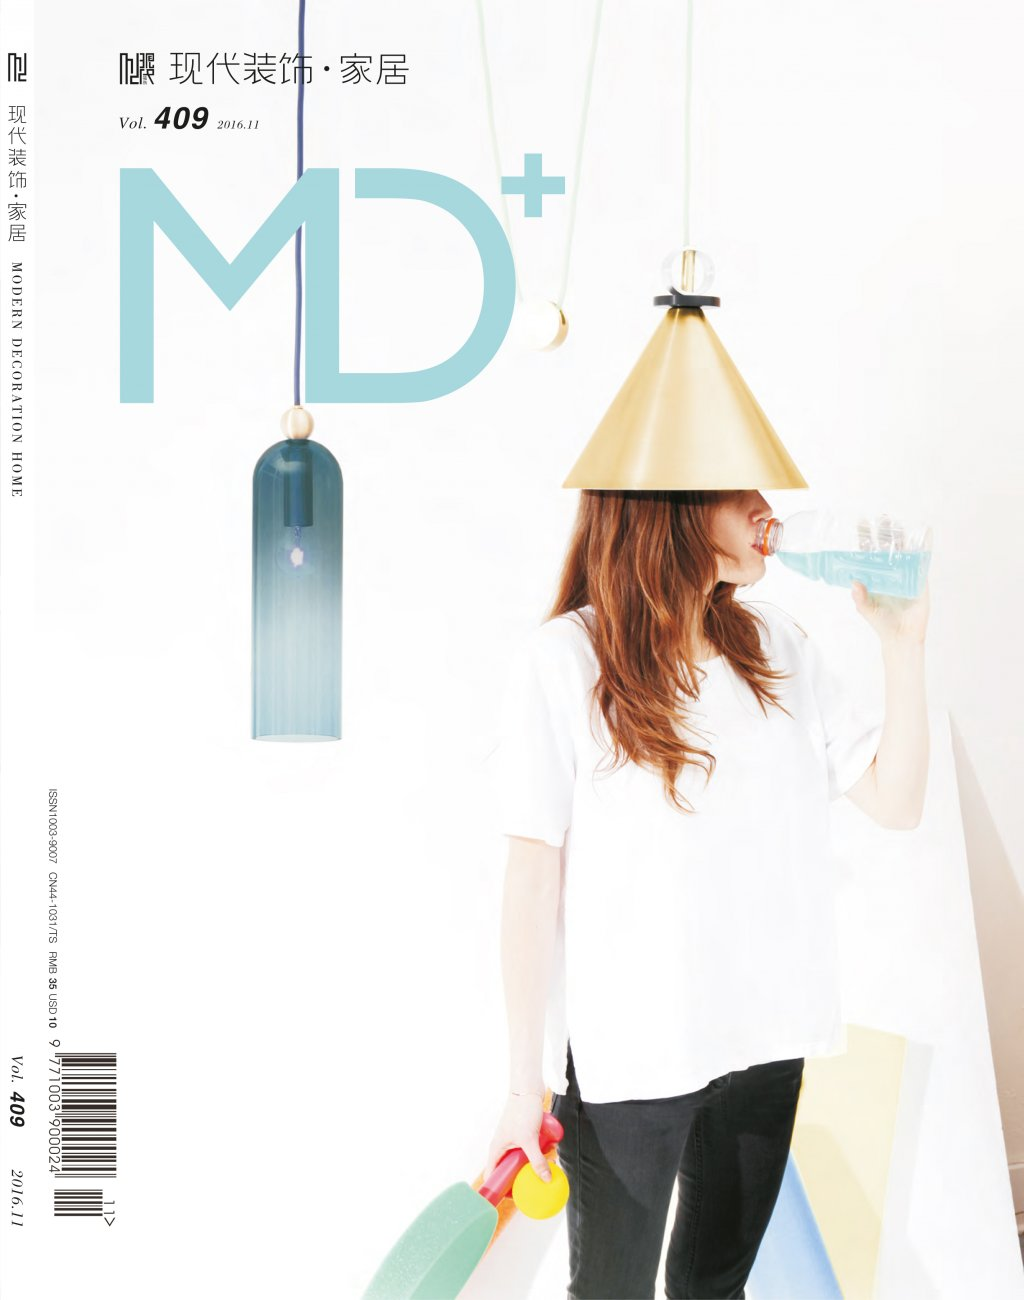 MD+ Vol.409 / November 2016 / MD+ Magazine